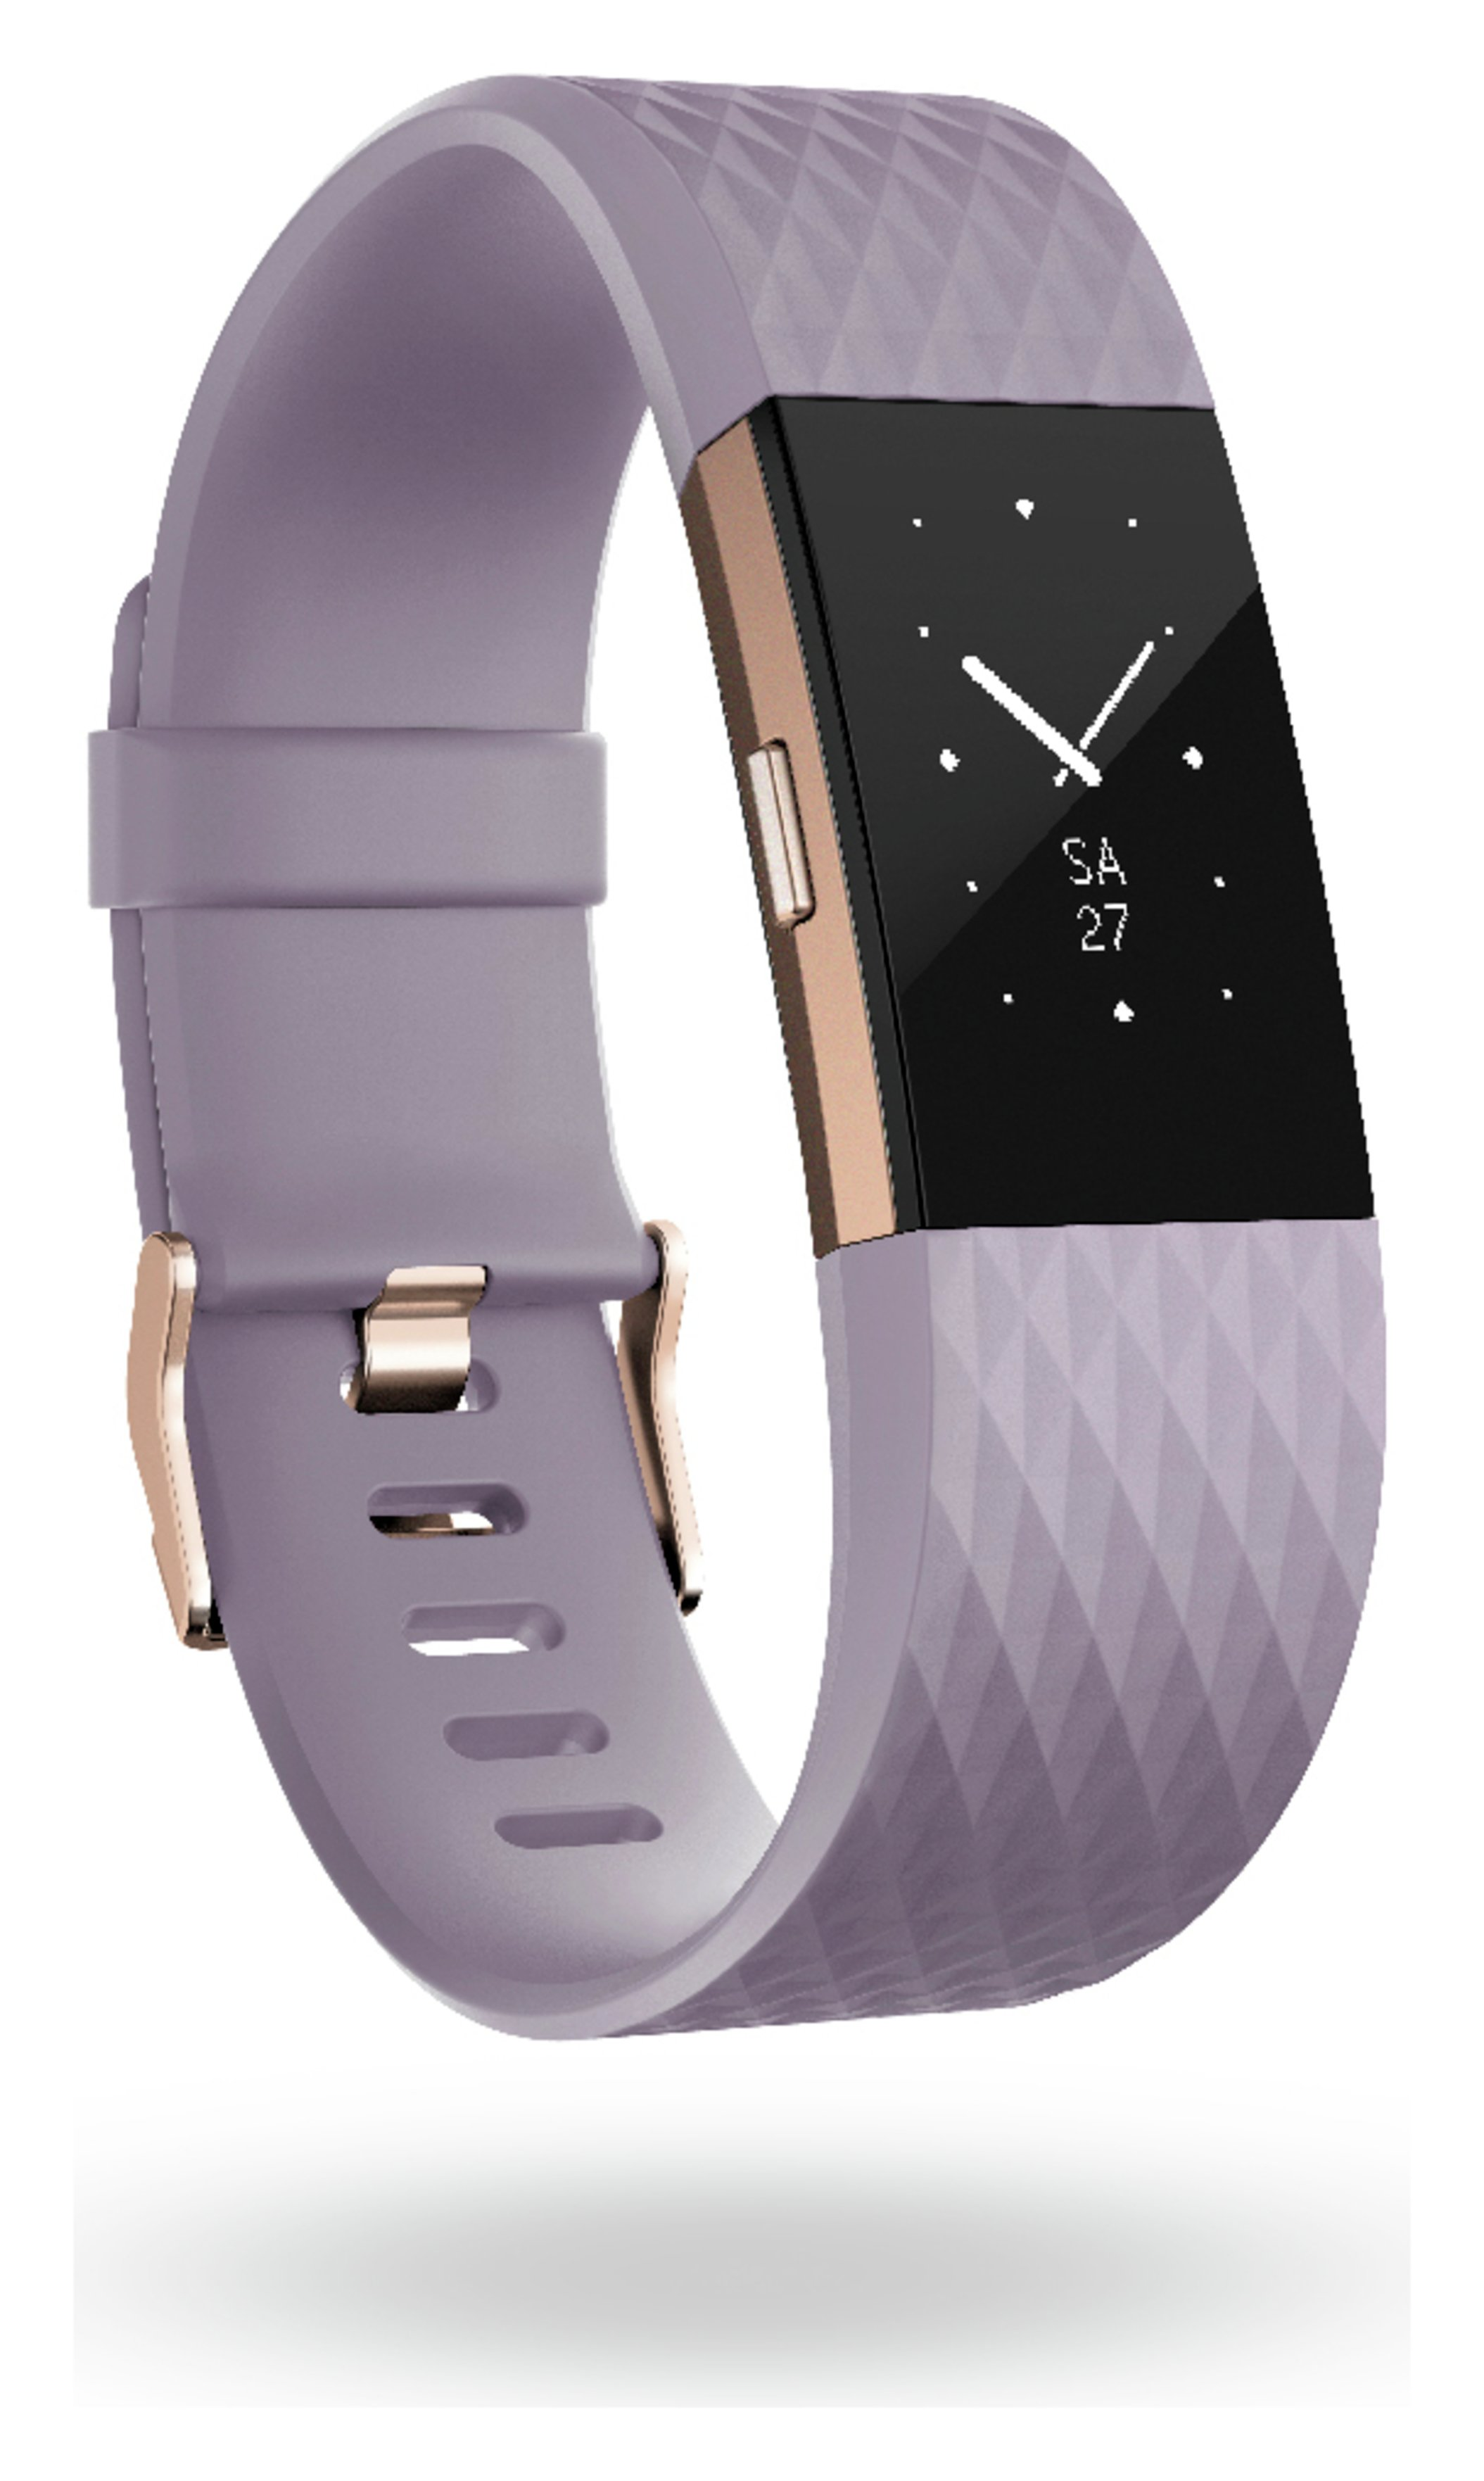 Fitbit Special Edition Charge 2 Small Wristband - Rose Gold